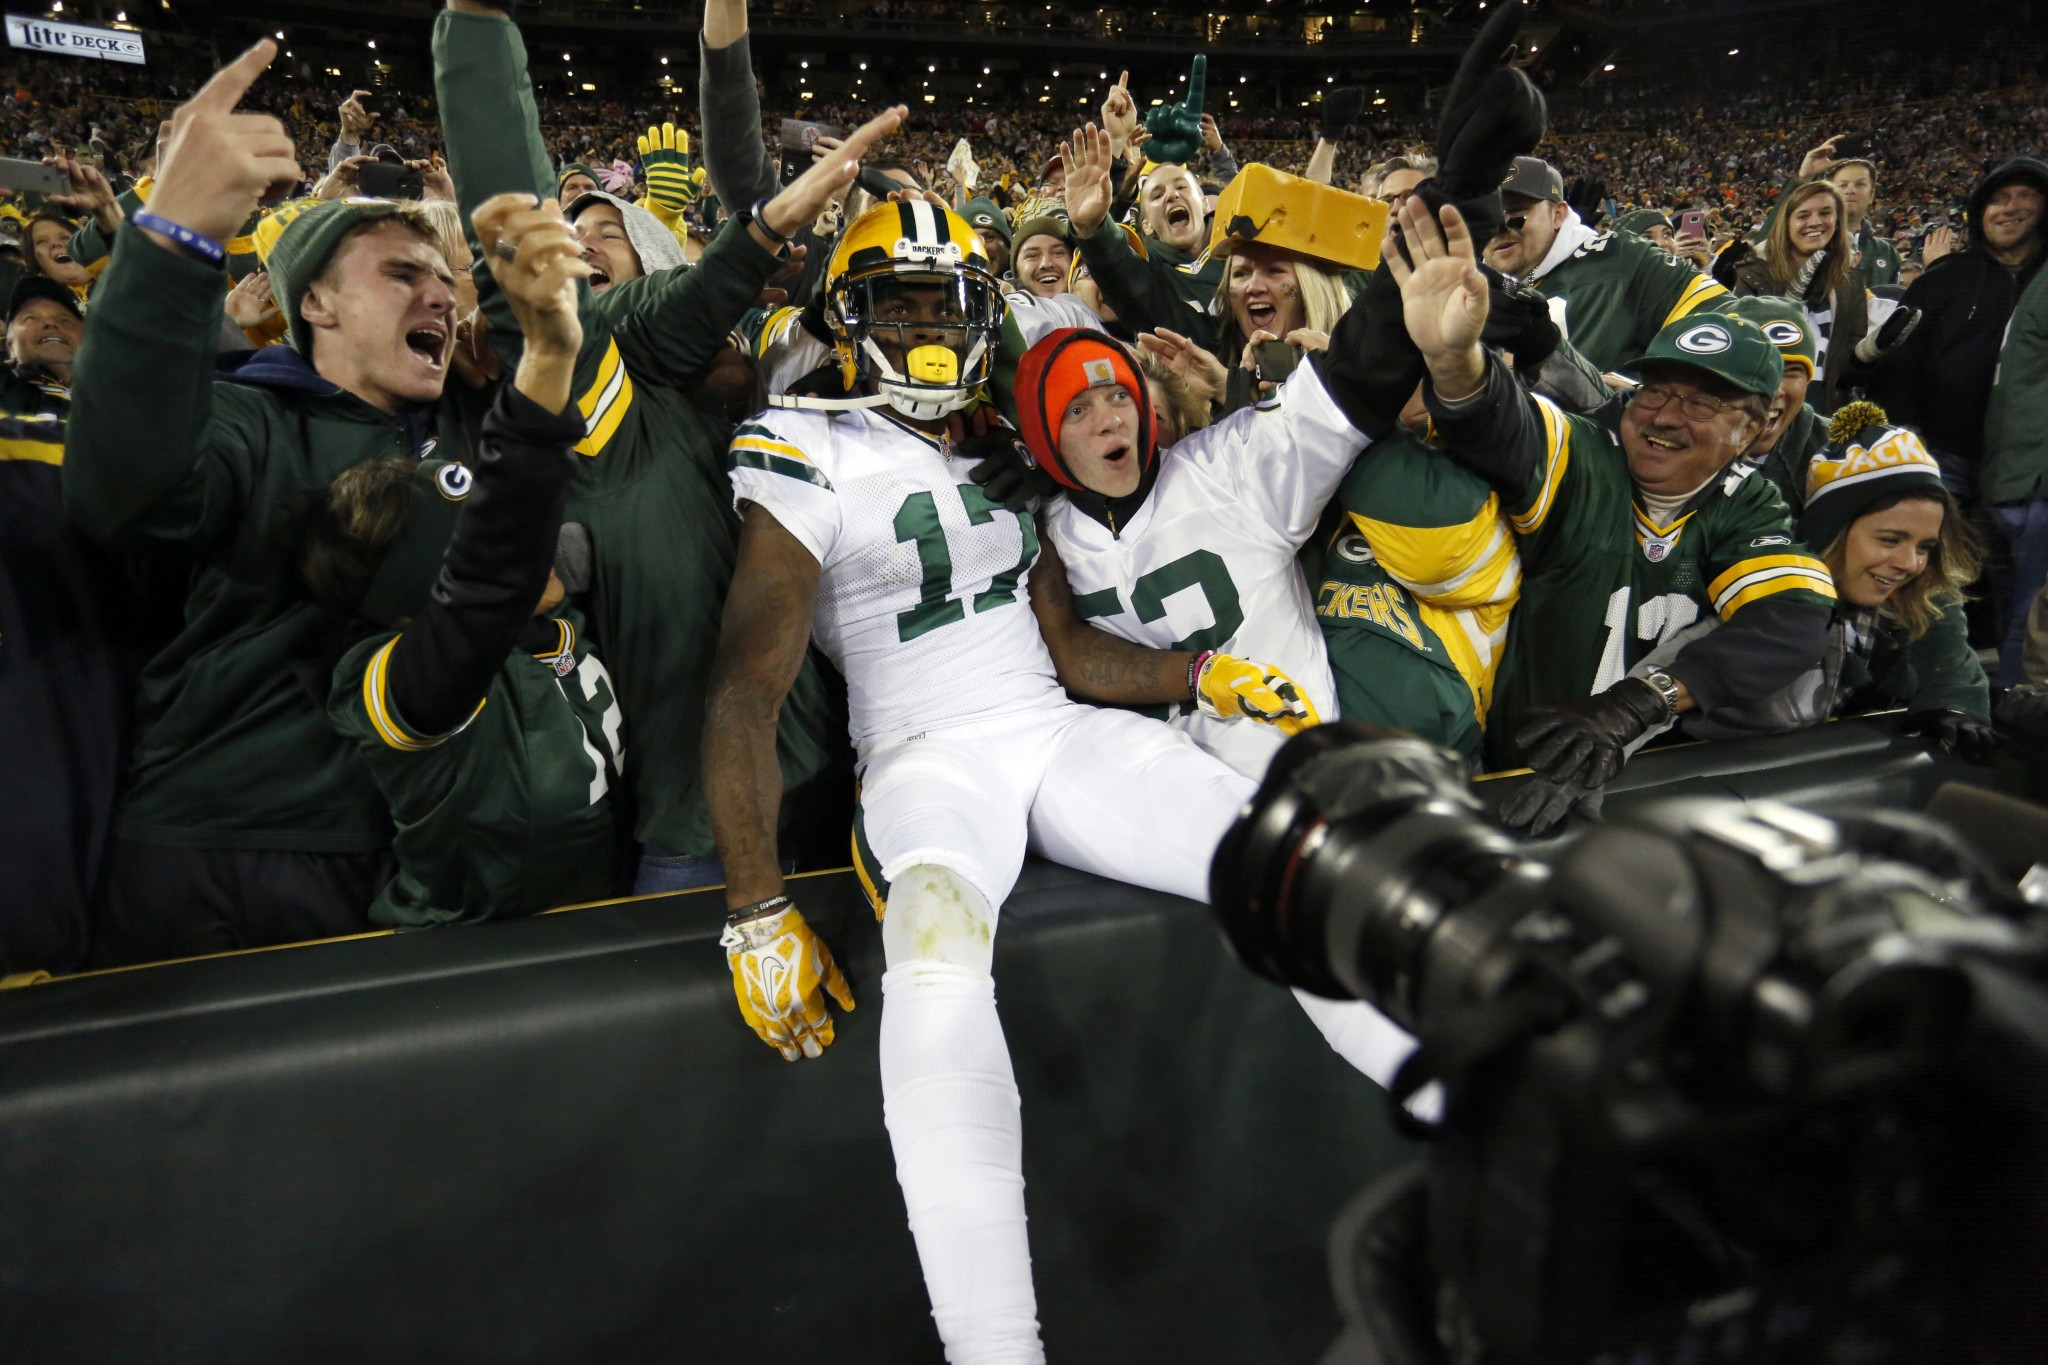 Big performances from Adams, Montgomery bail out ailing Packers…